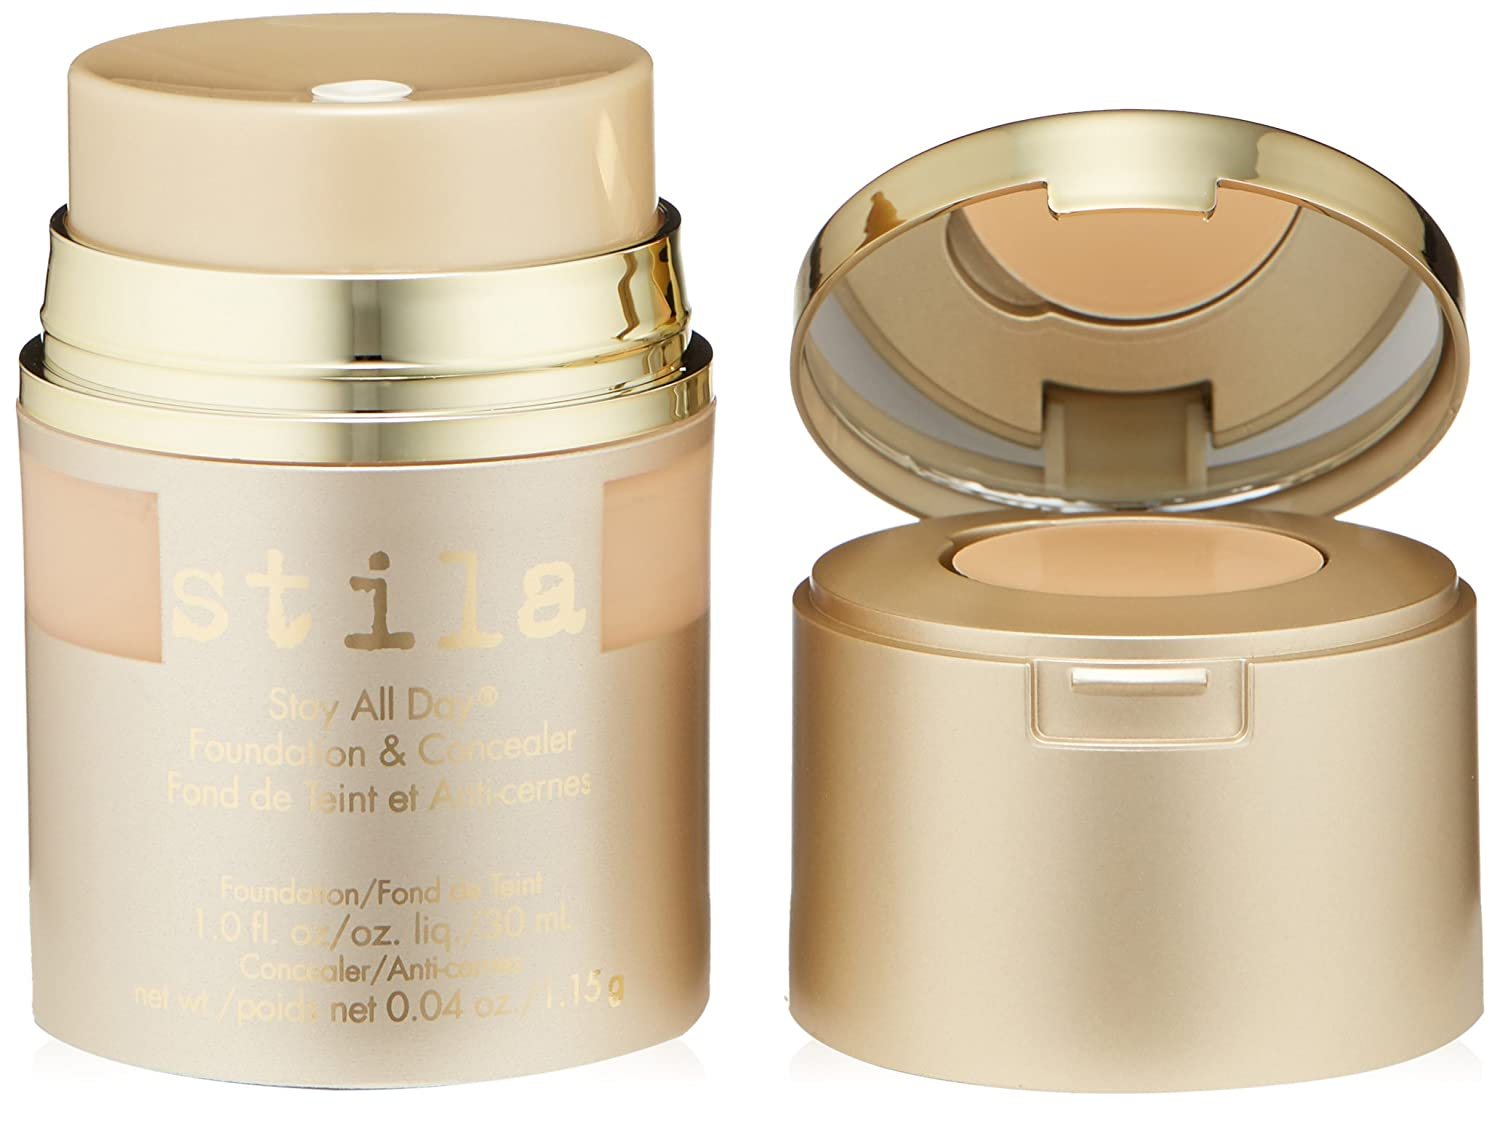 stila Stay All Day Foundation & Concealer